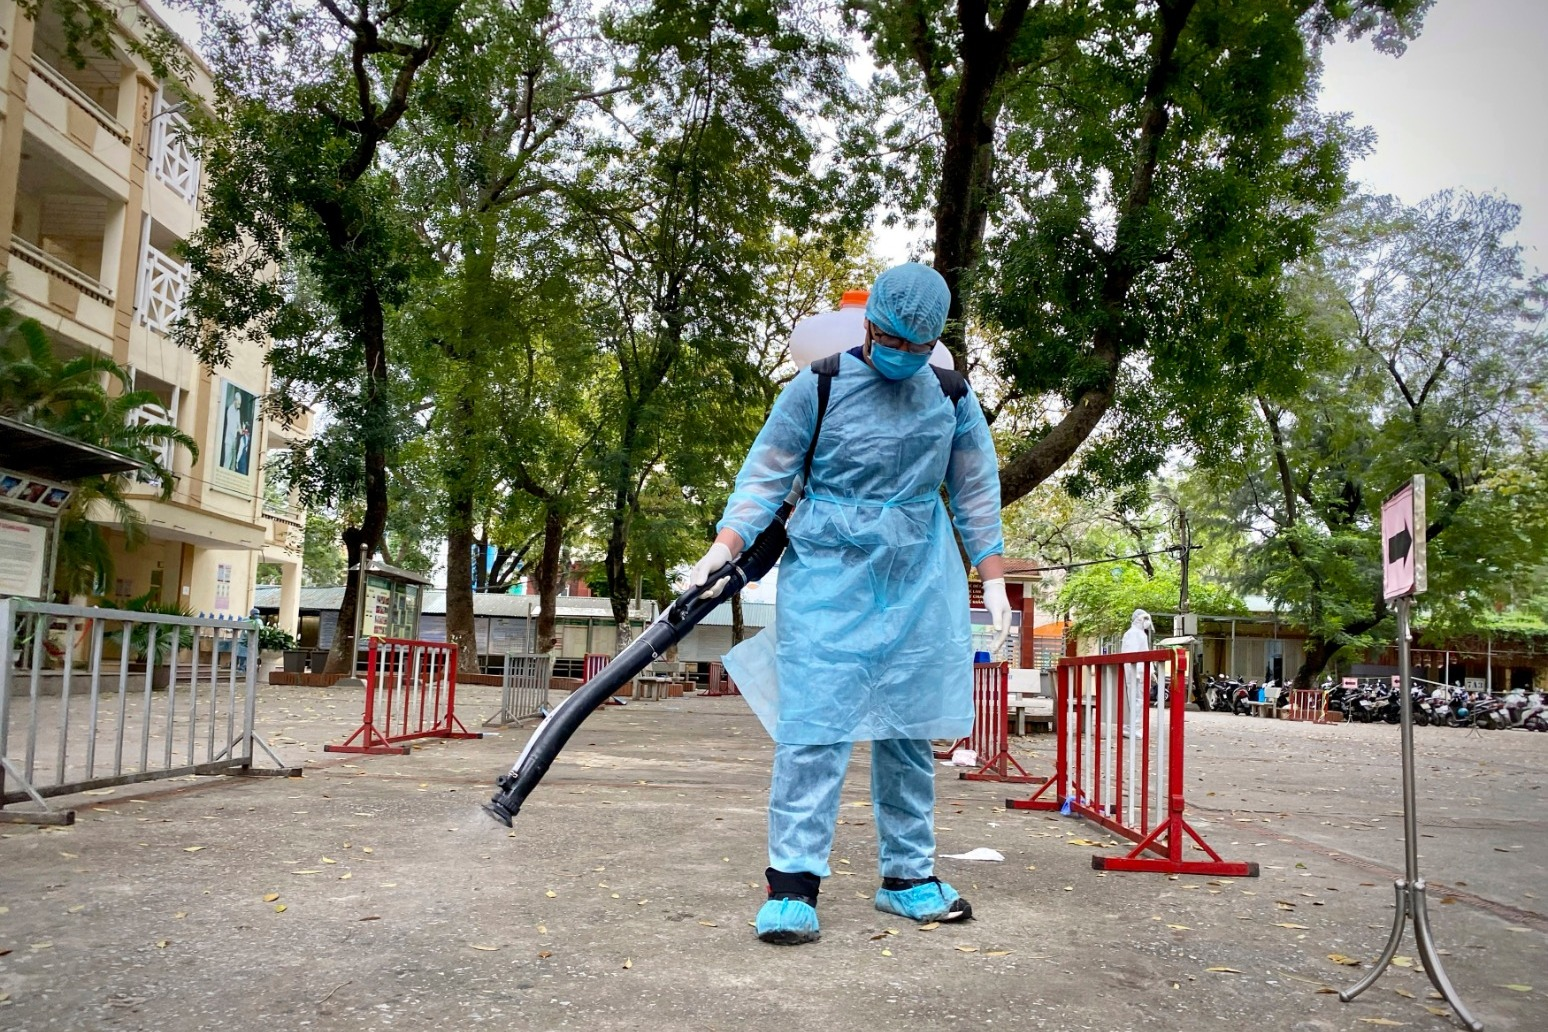 Global Coronavirus infections top 800,000 as Spain sees record death count